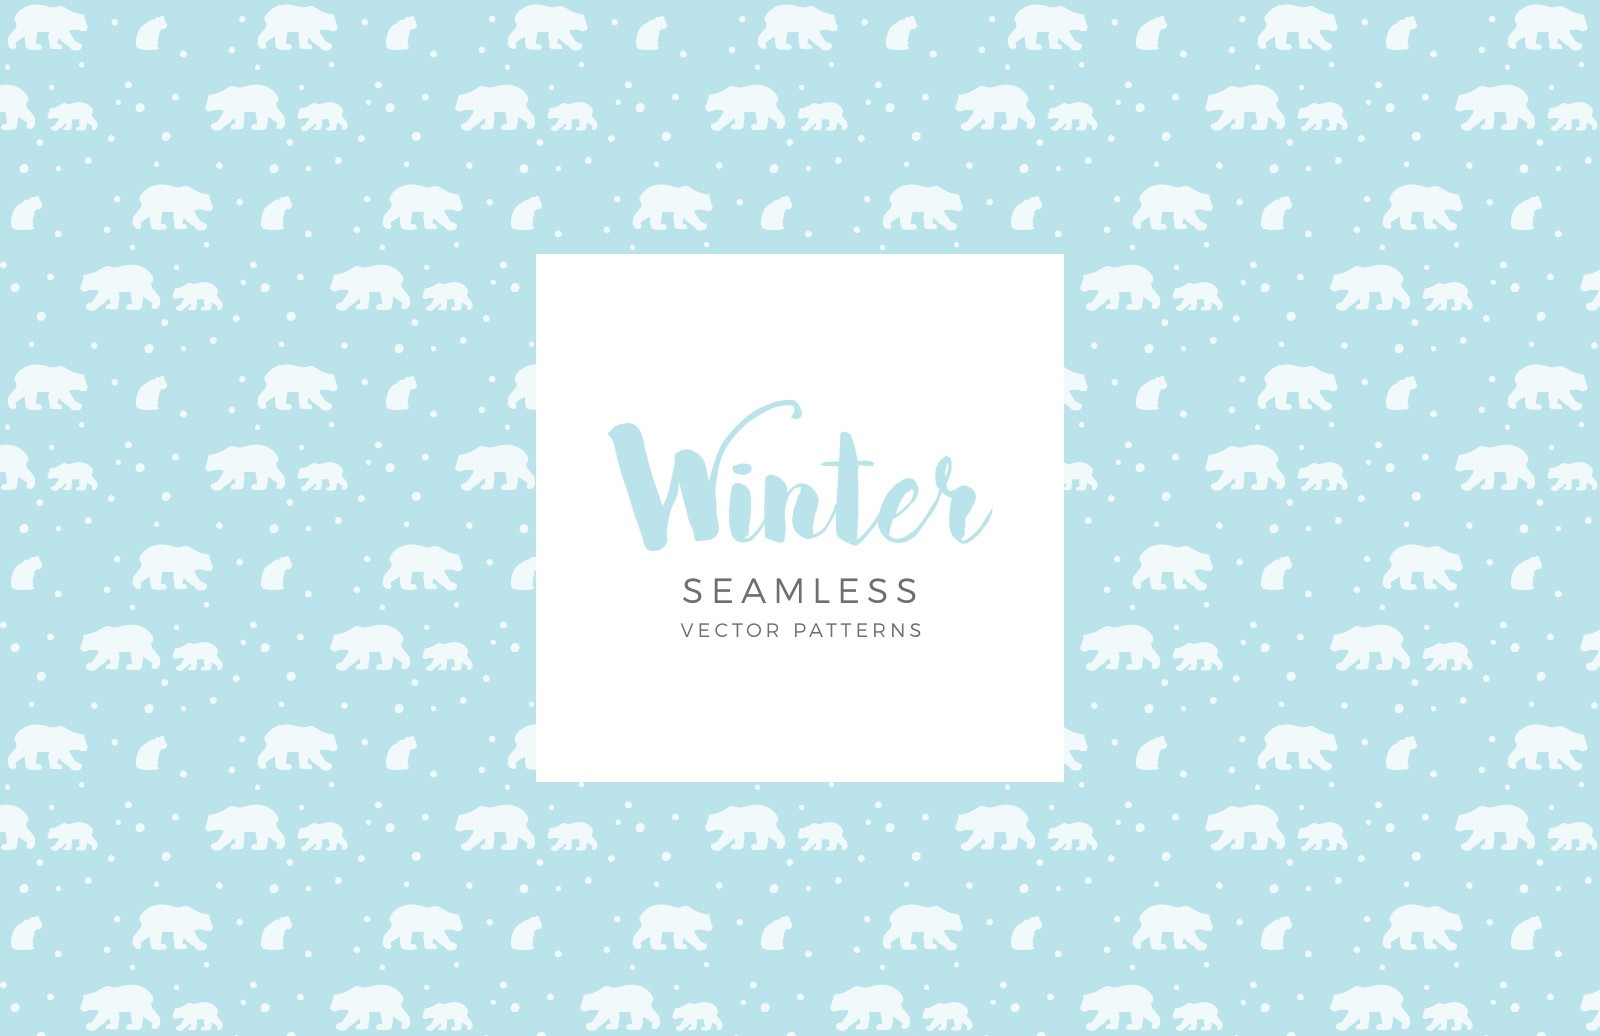 Seamless Vector Winter Patterns